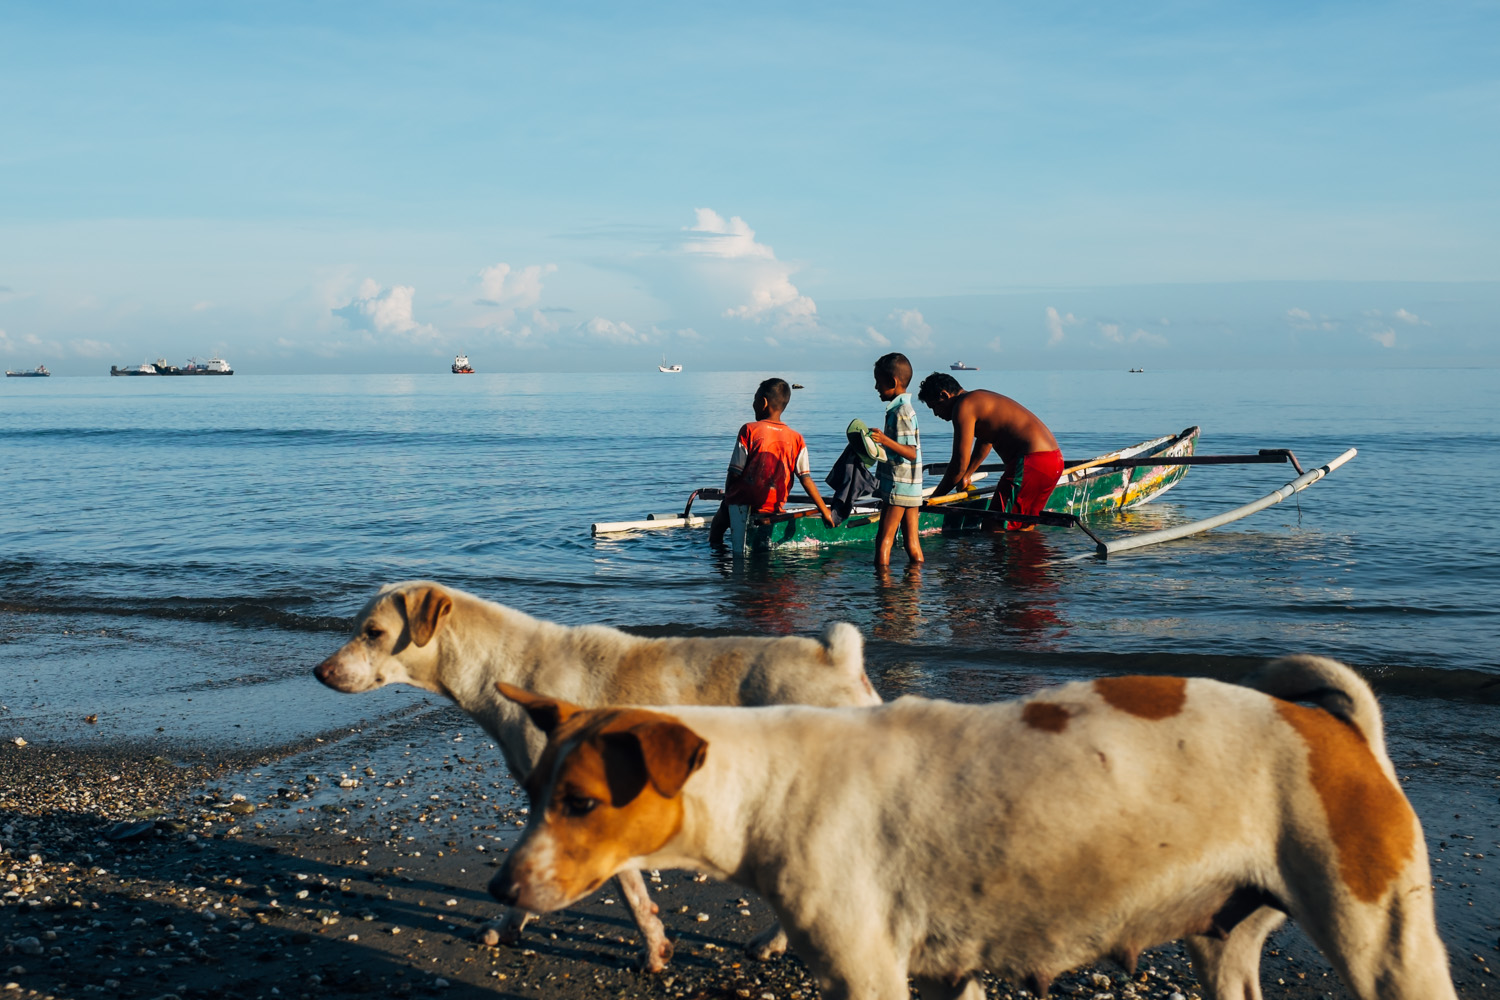 Dogs and fishermen sharing the early Sun on a beach outside Dili